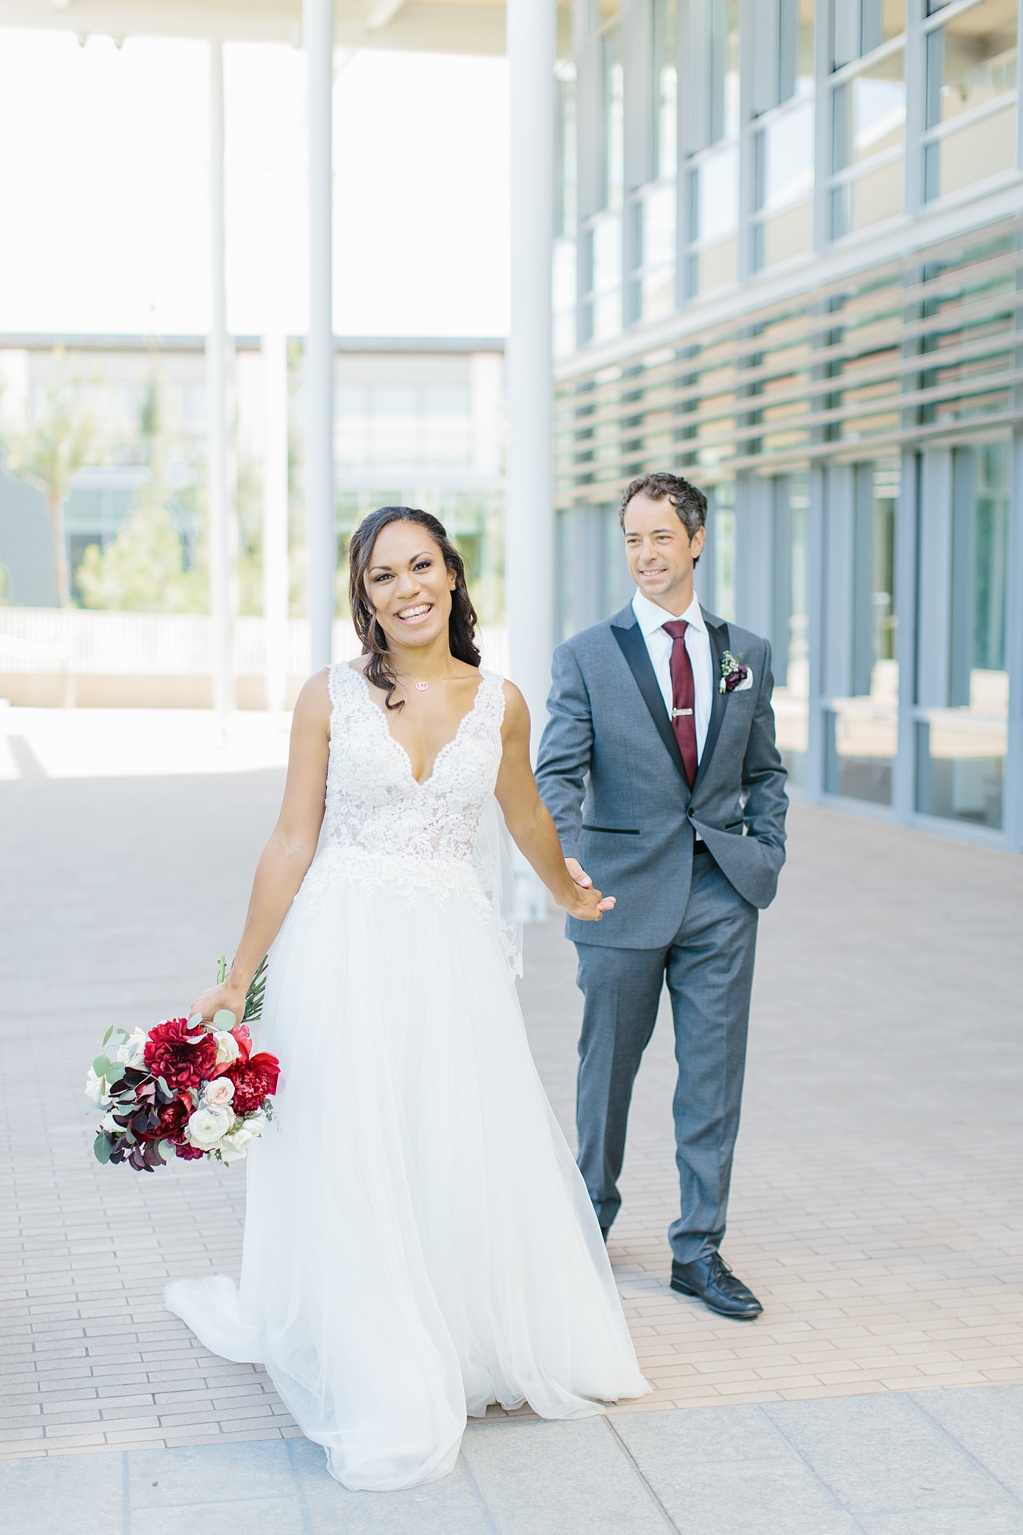 Natural Light Church Wedding In Irvine California By Madison Ellis Photography (34)